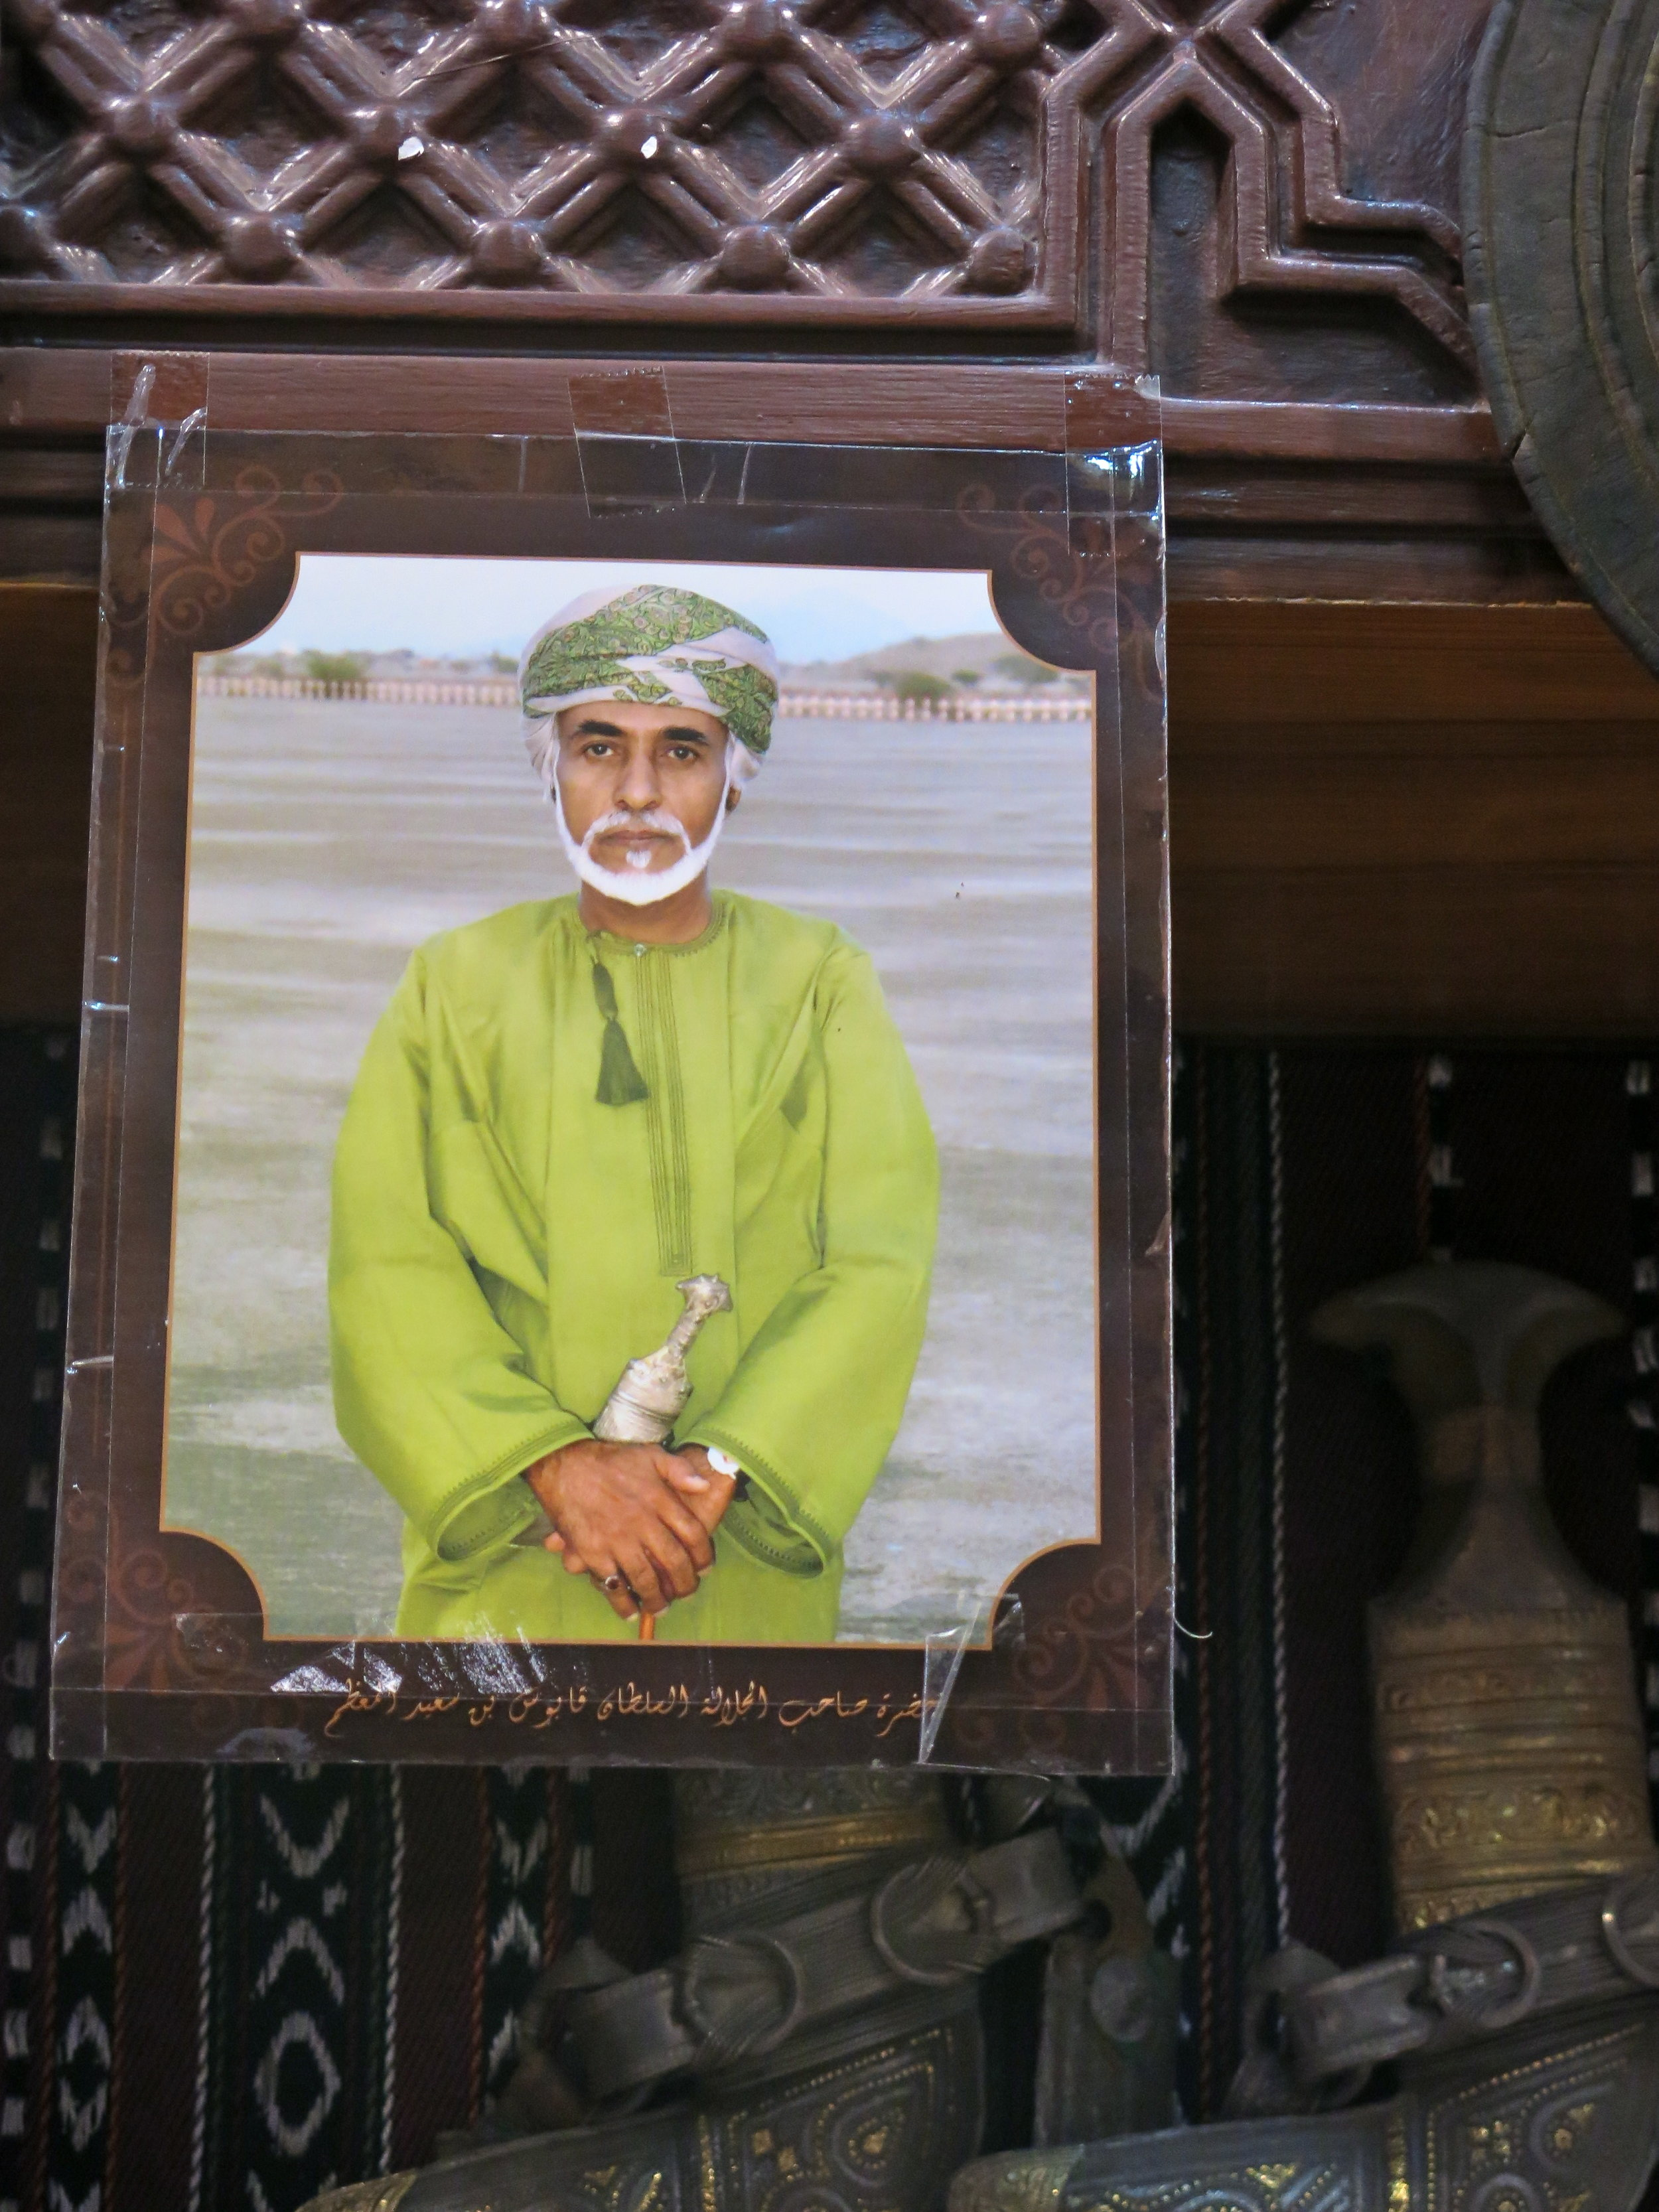 A portrait of Sultan Qaboos hanging in a souk